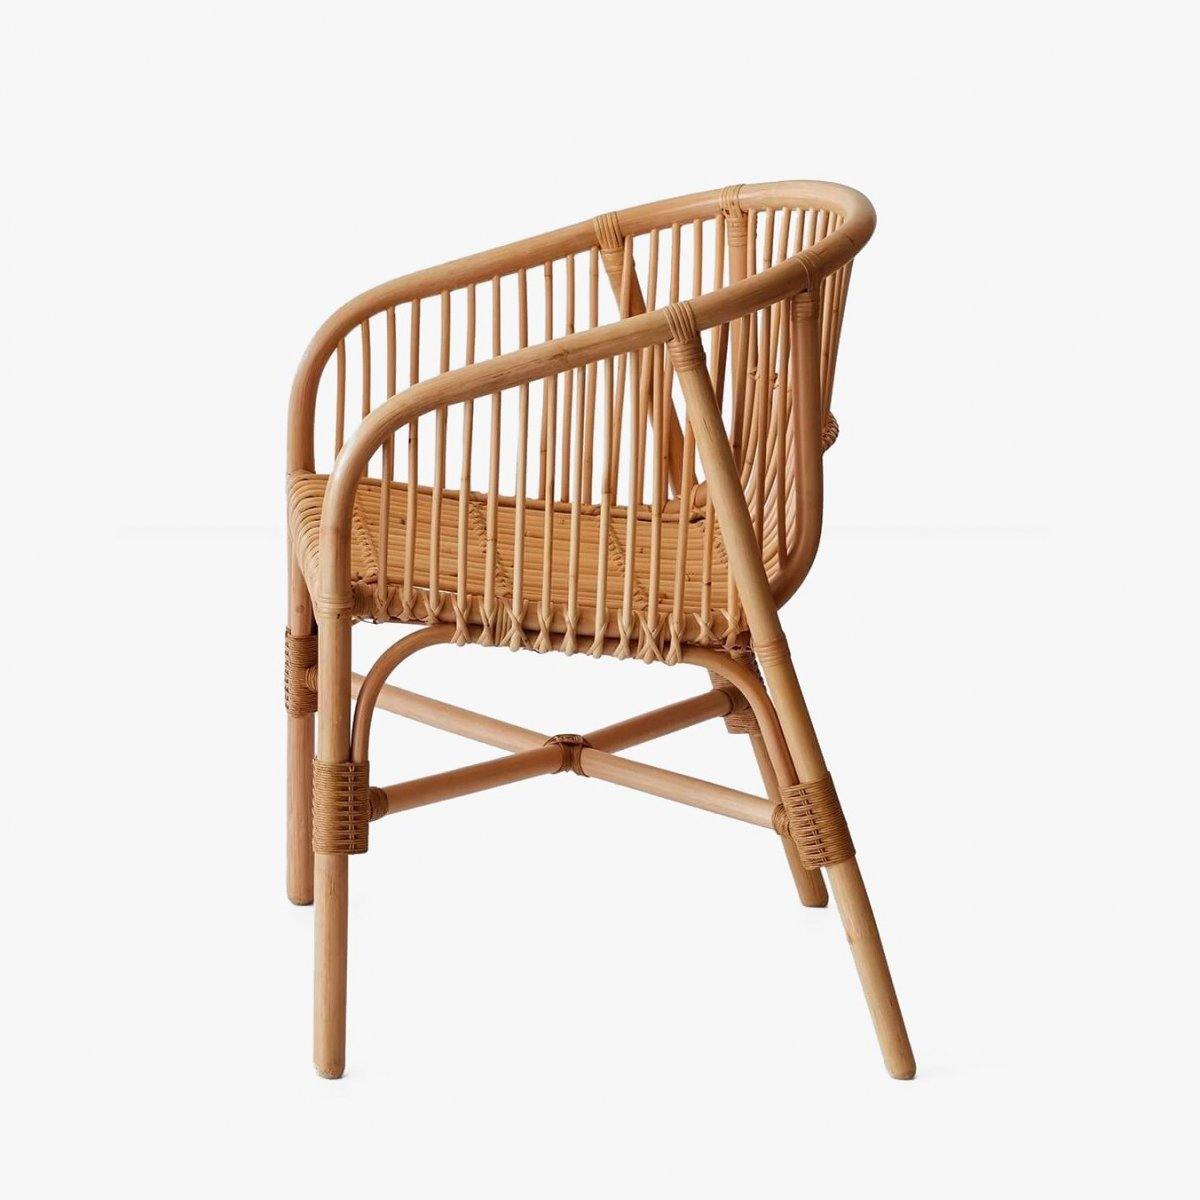 Jakarta Rattan Dining Chair, side view.